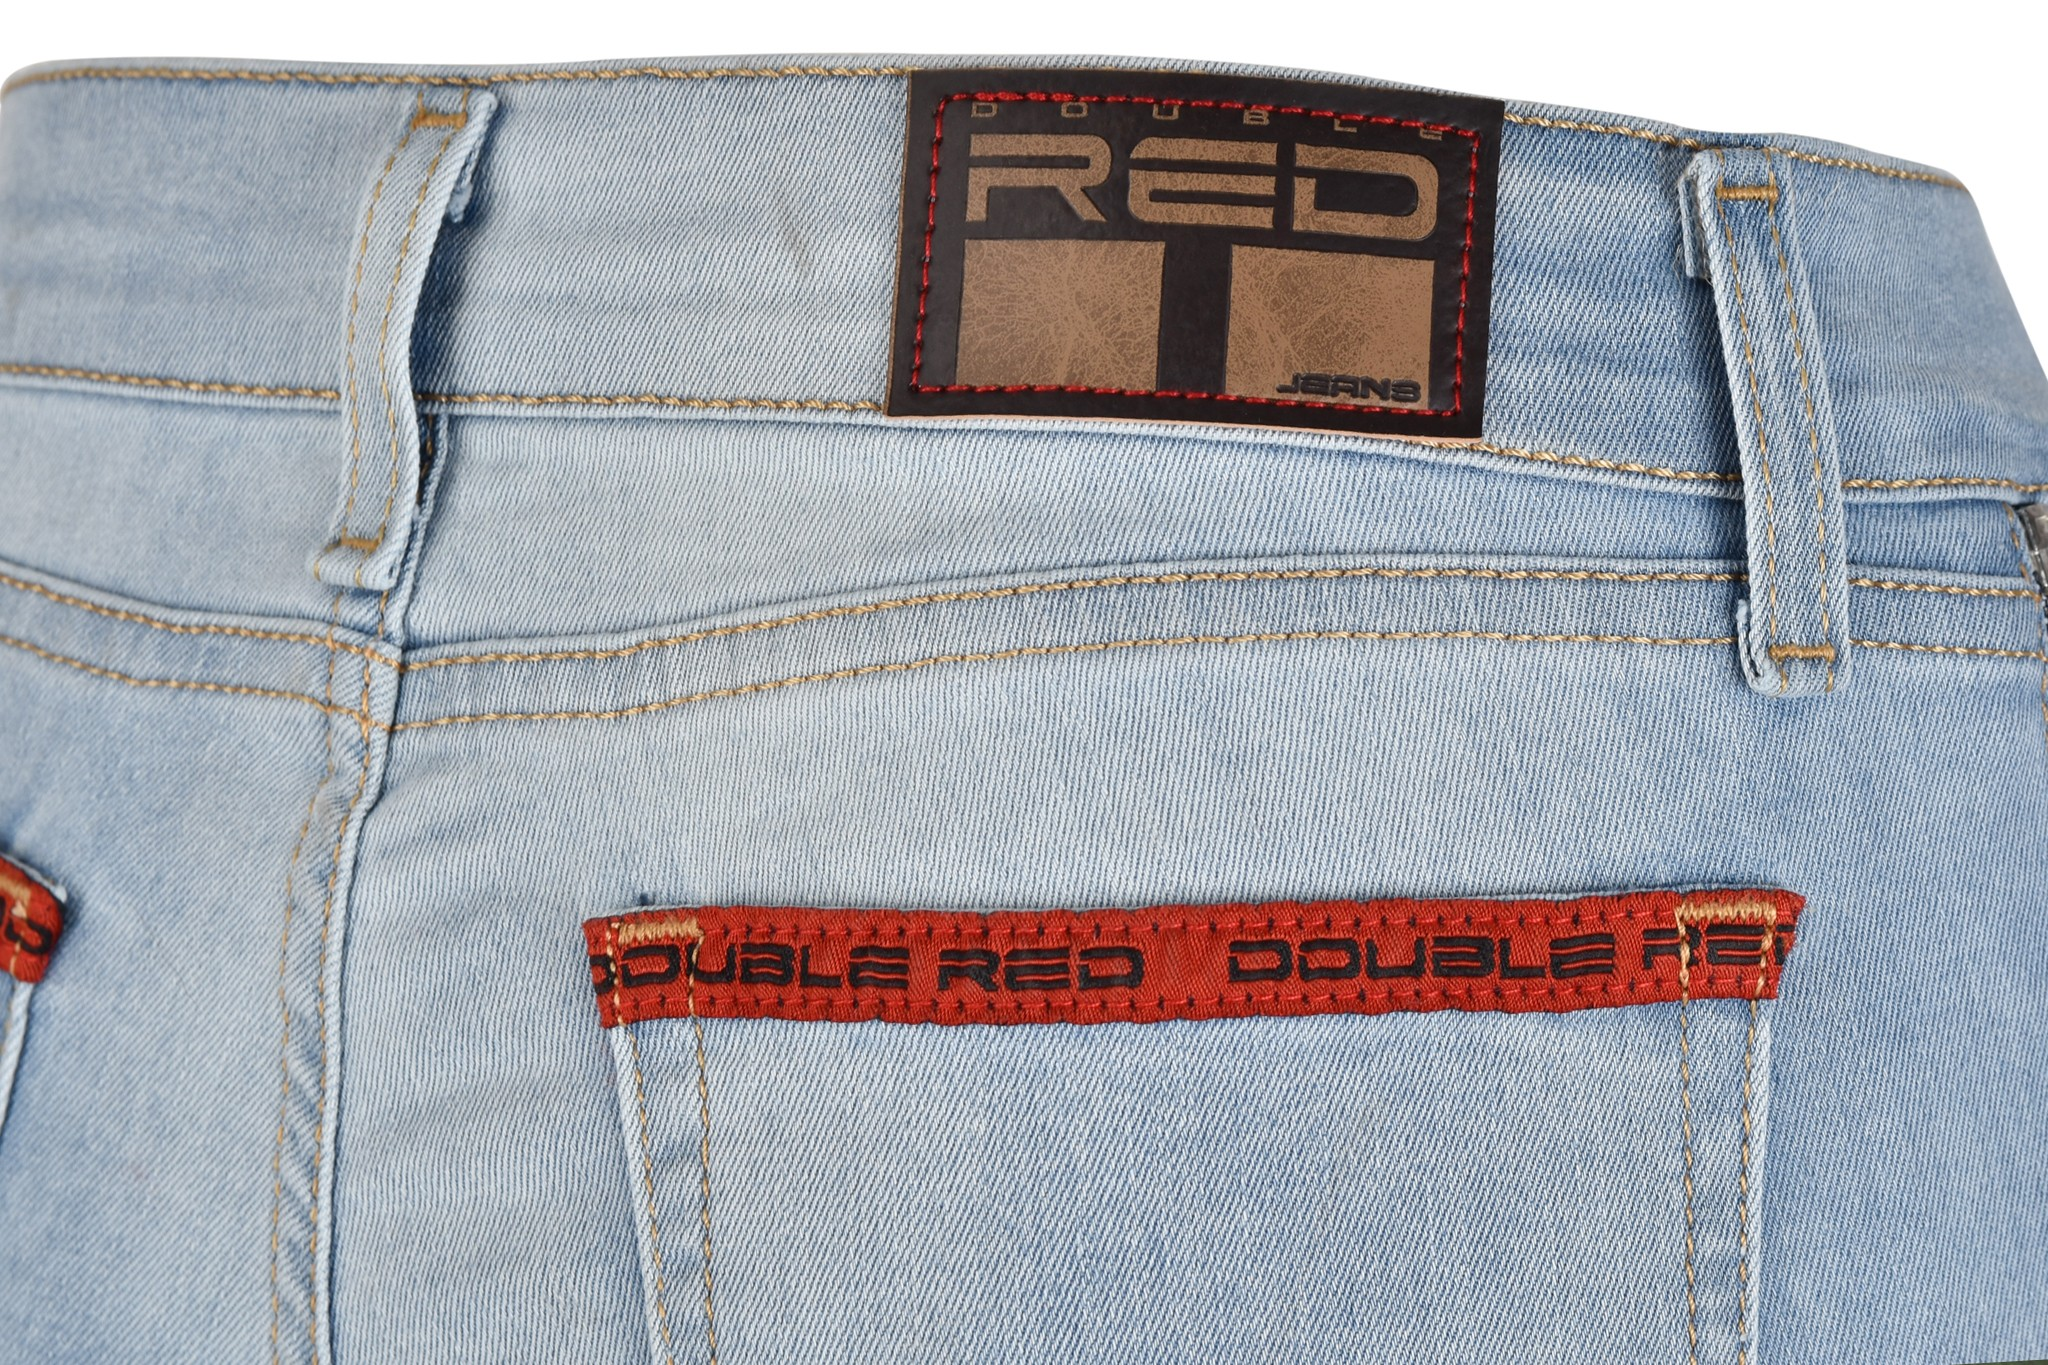 RED Zipper Jeans Collection